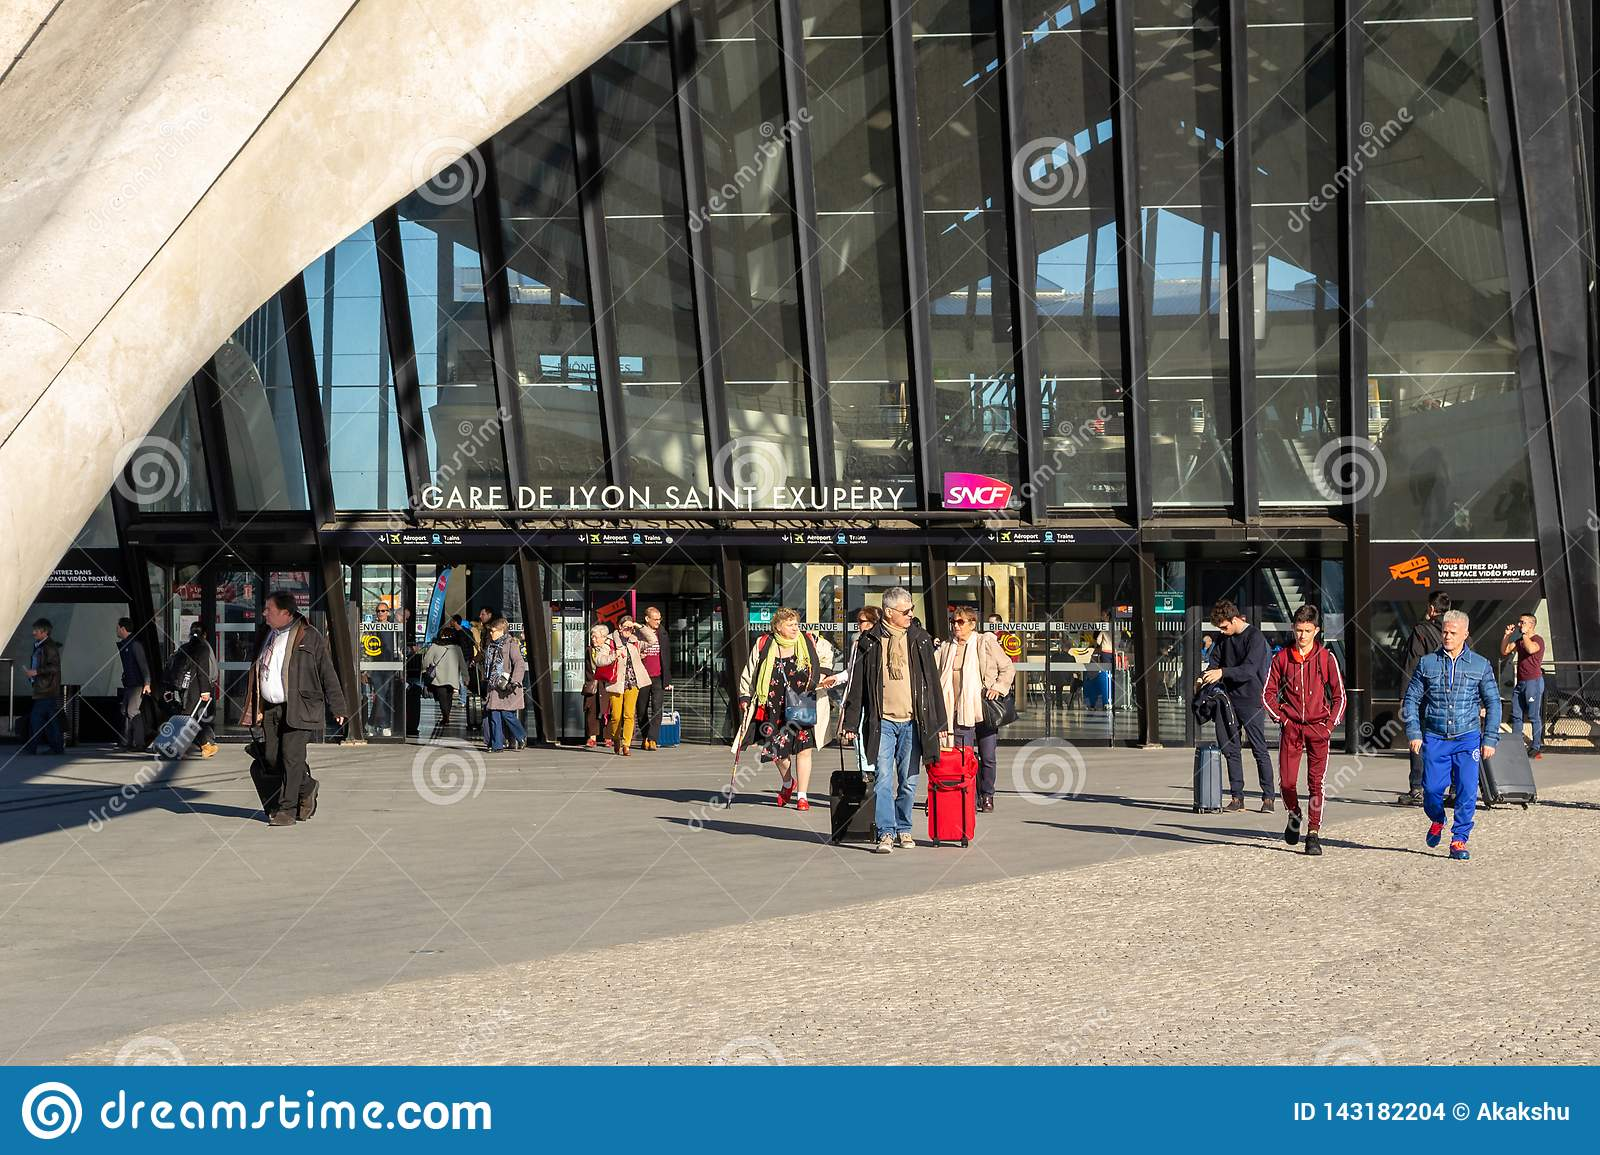 People arriving and departing at Gare de Lyon Saint Exupery SNCF main station, with carry on bags